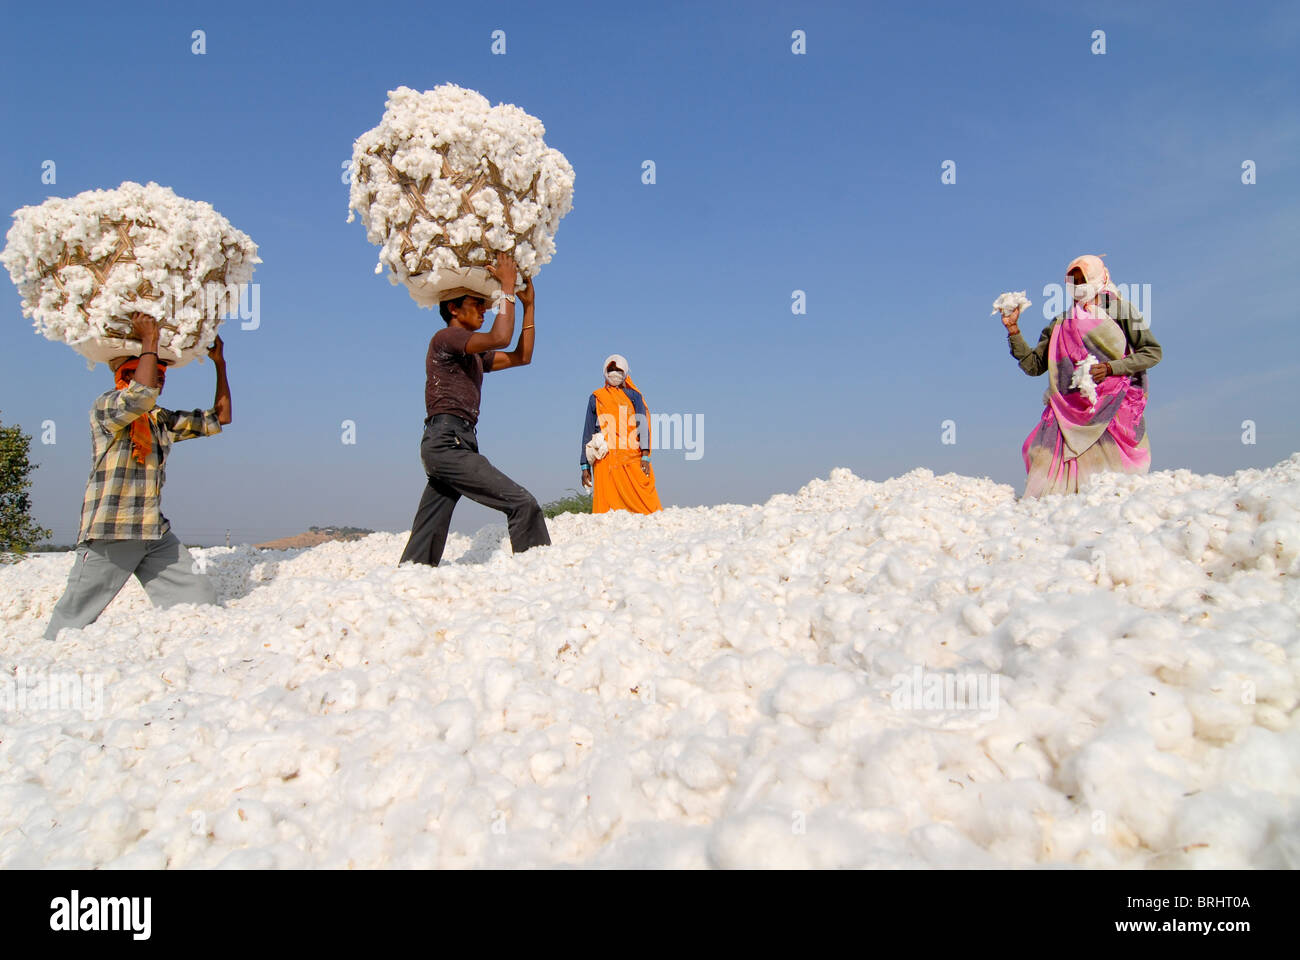 Stock Photo - INDIA Madhya Pradesh , storage place for organic cotton at biore ginning factory - more images available for Hi-res download at www.visualindia.de